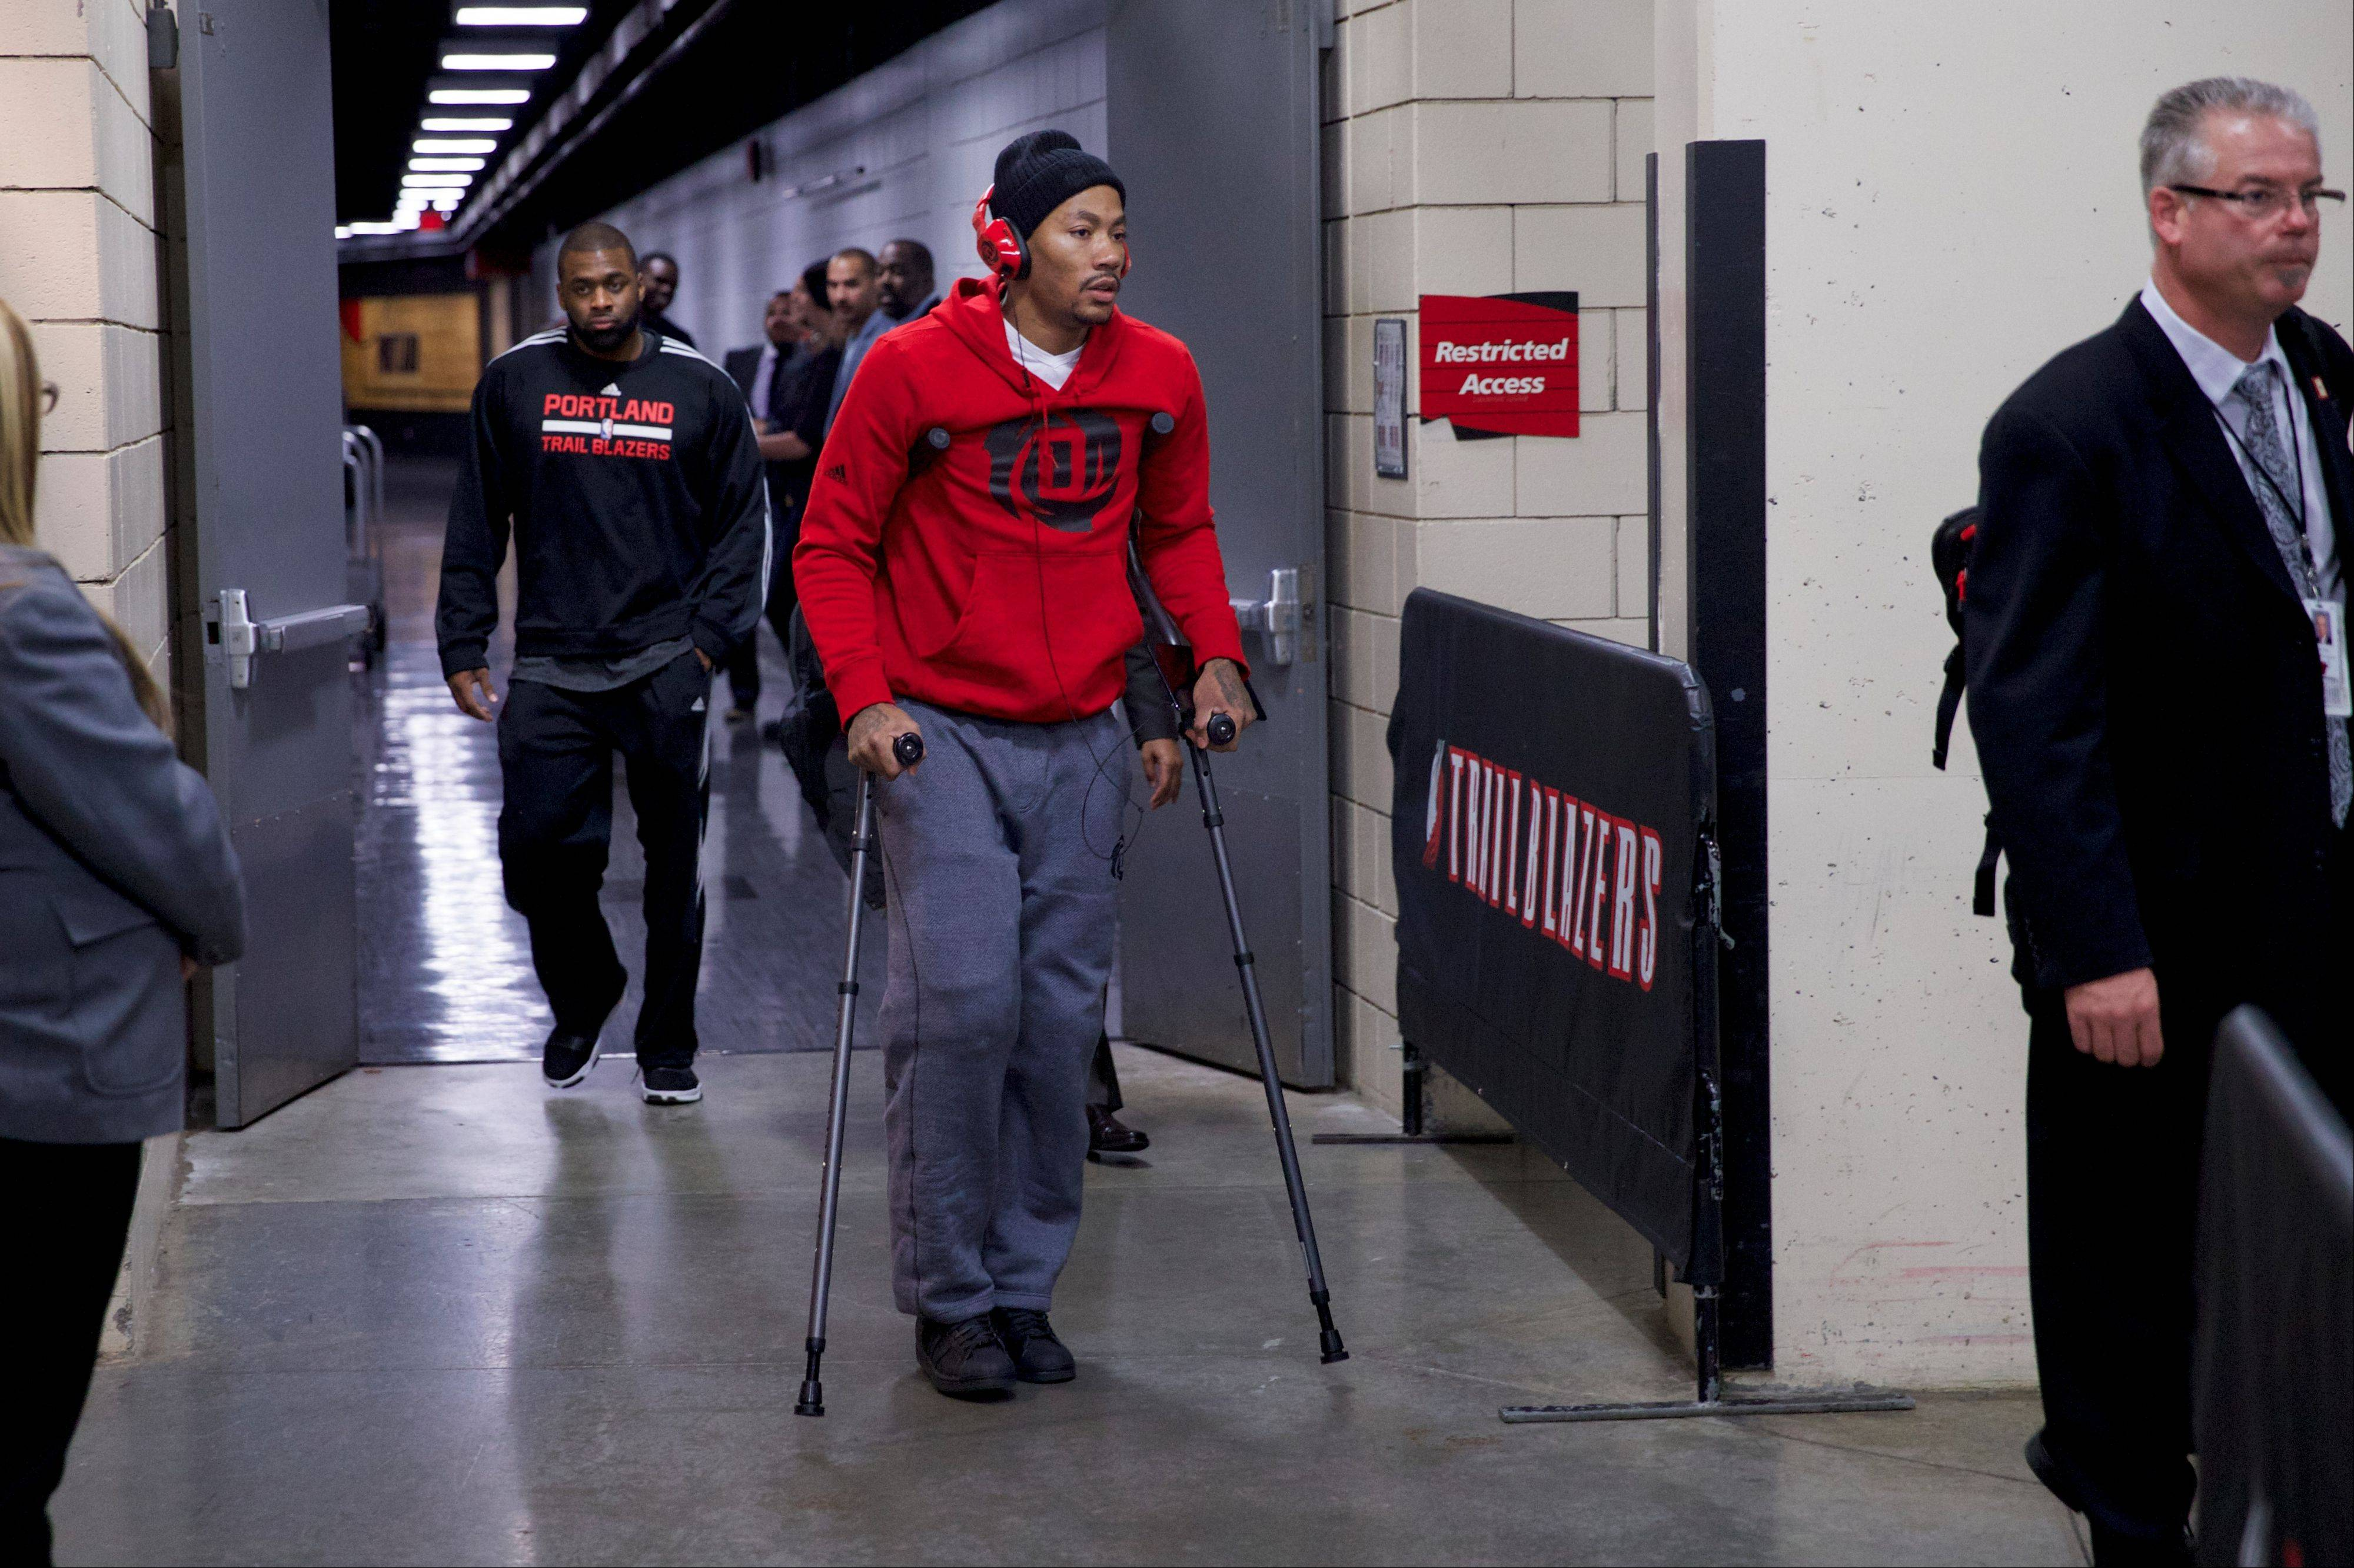 In this photo taken on Friday, Nov. 22, 2013, Bulls point guard Derrick Rose (1) leaves the Moda Center on crutches after he was injured against the Portland Trail Blazers in Portland, Ore. Rose tore meniscus in his right knee and is out indefinitely.